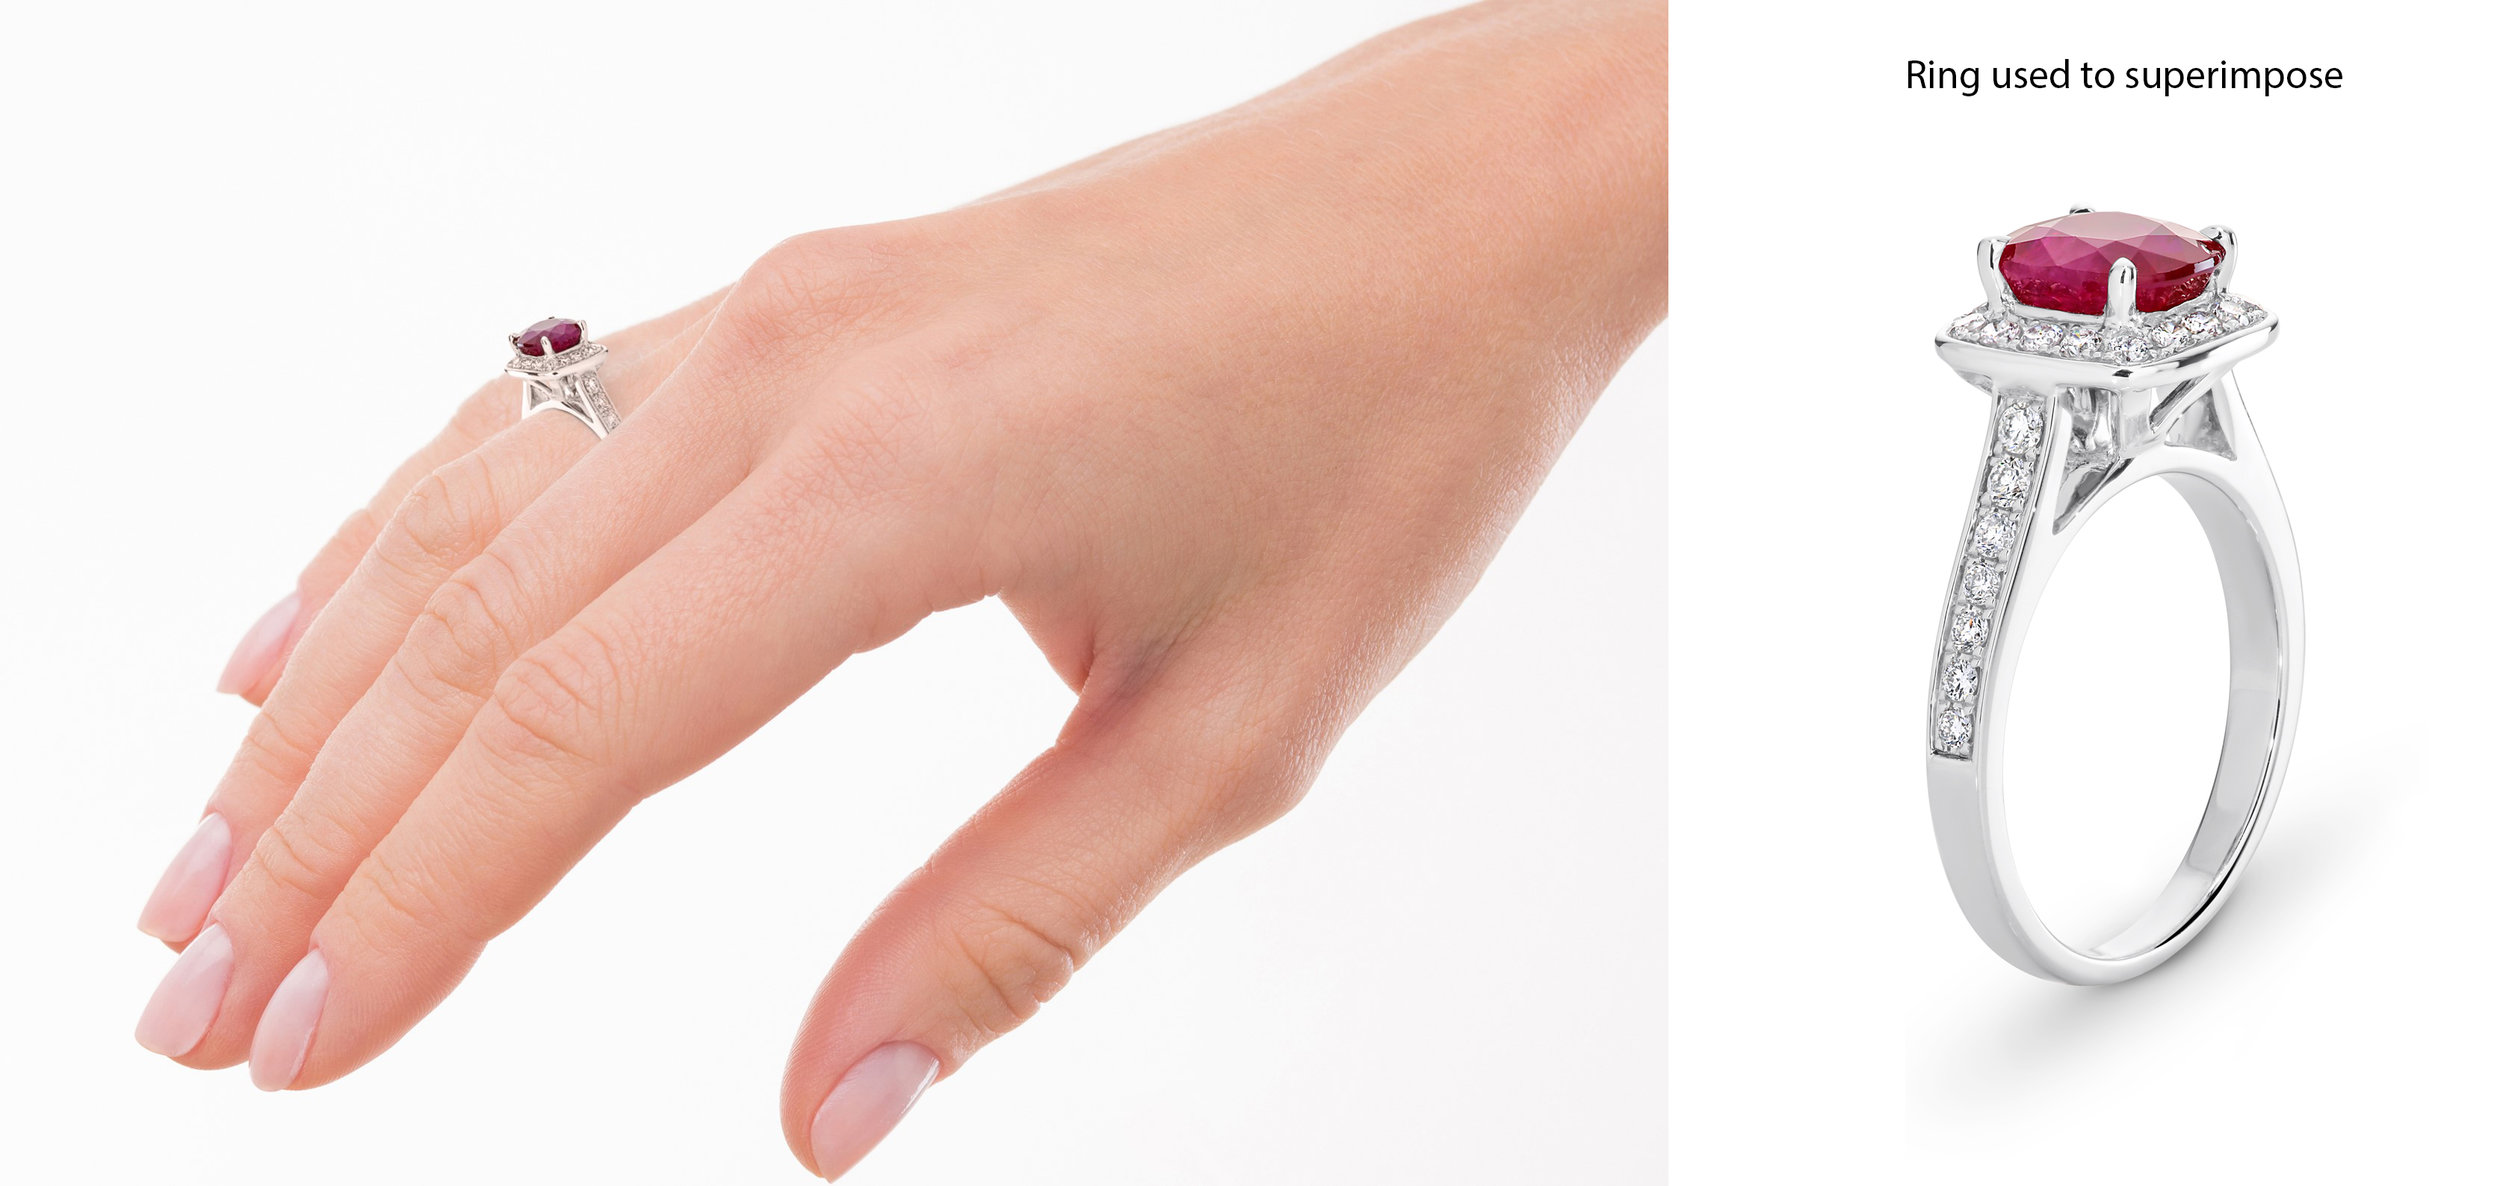 Copy of Woman's hand as if holding something